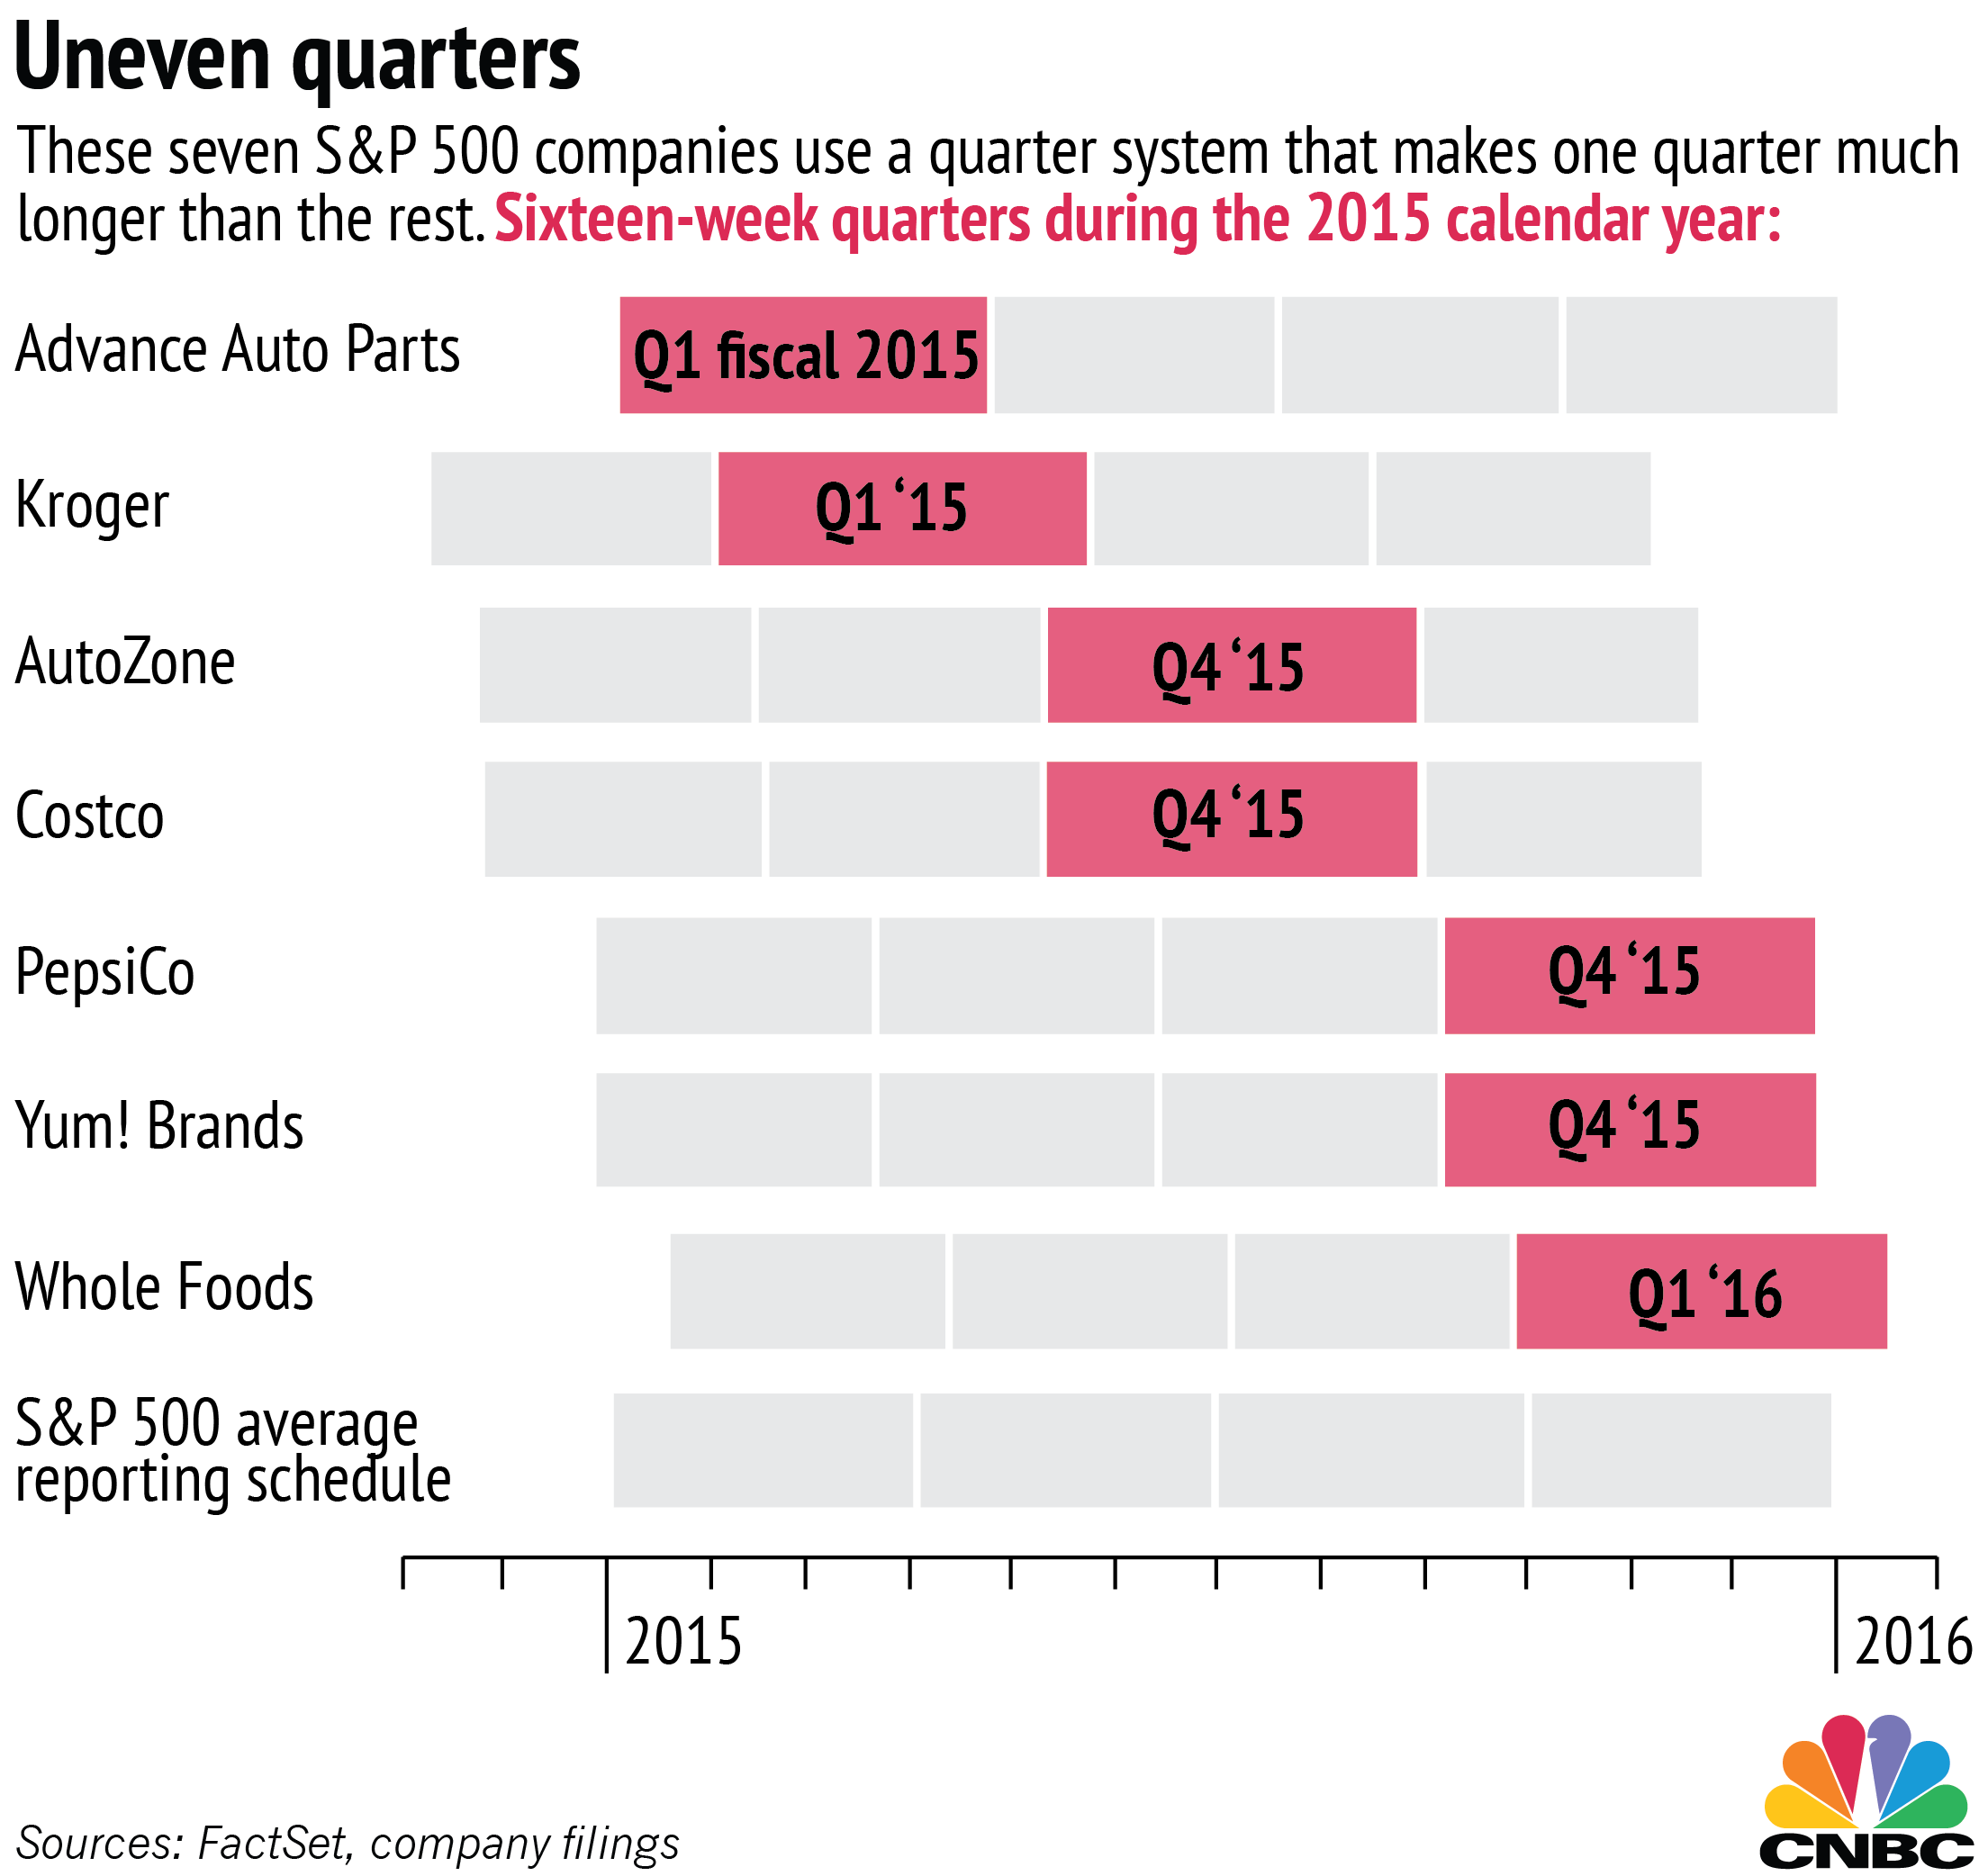 Supersized quarters: Some companies report quarterly info differently